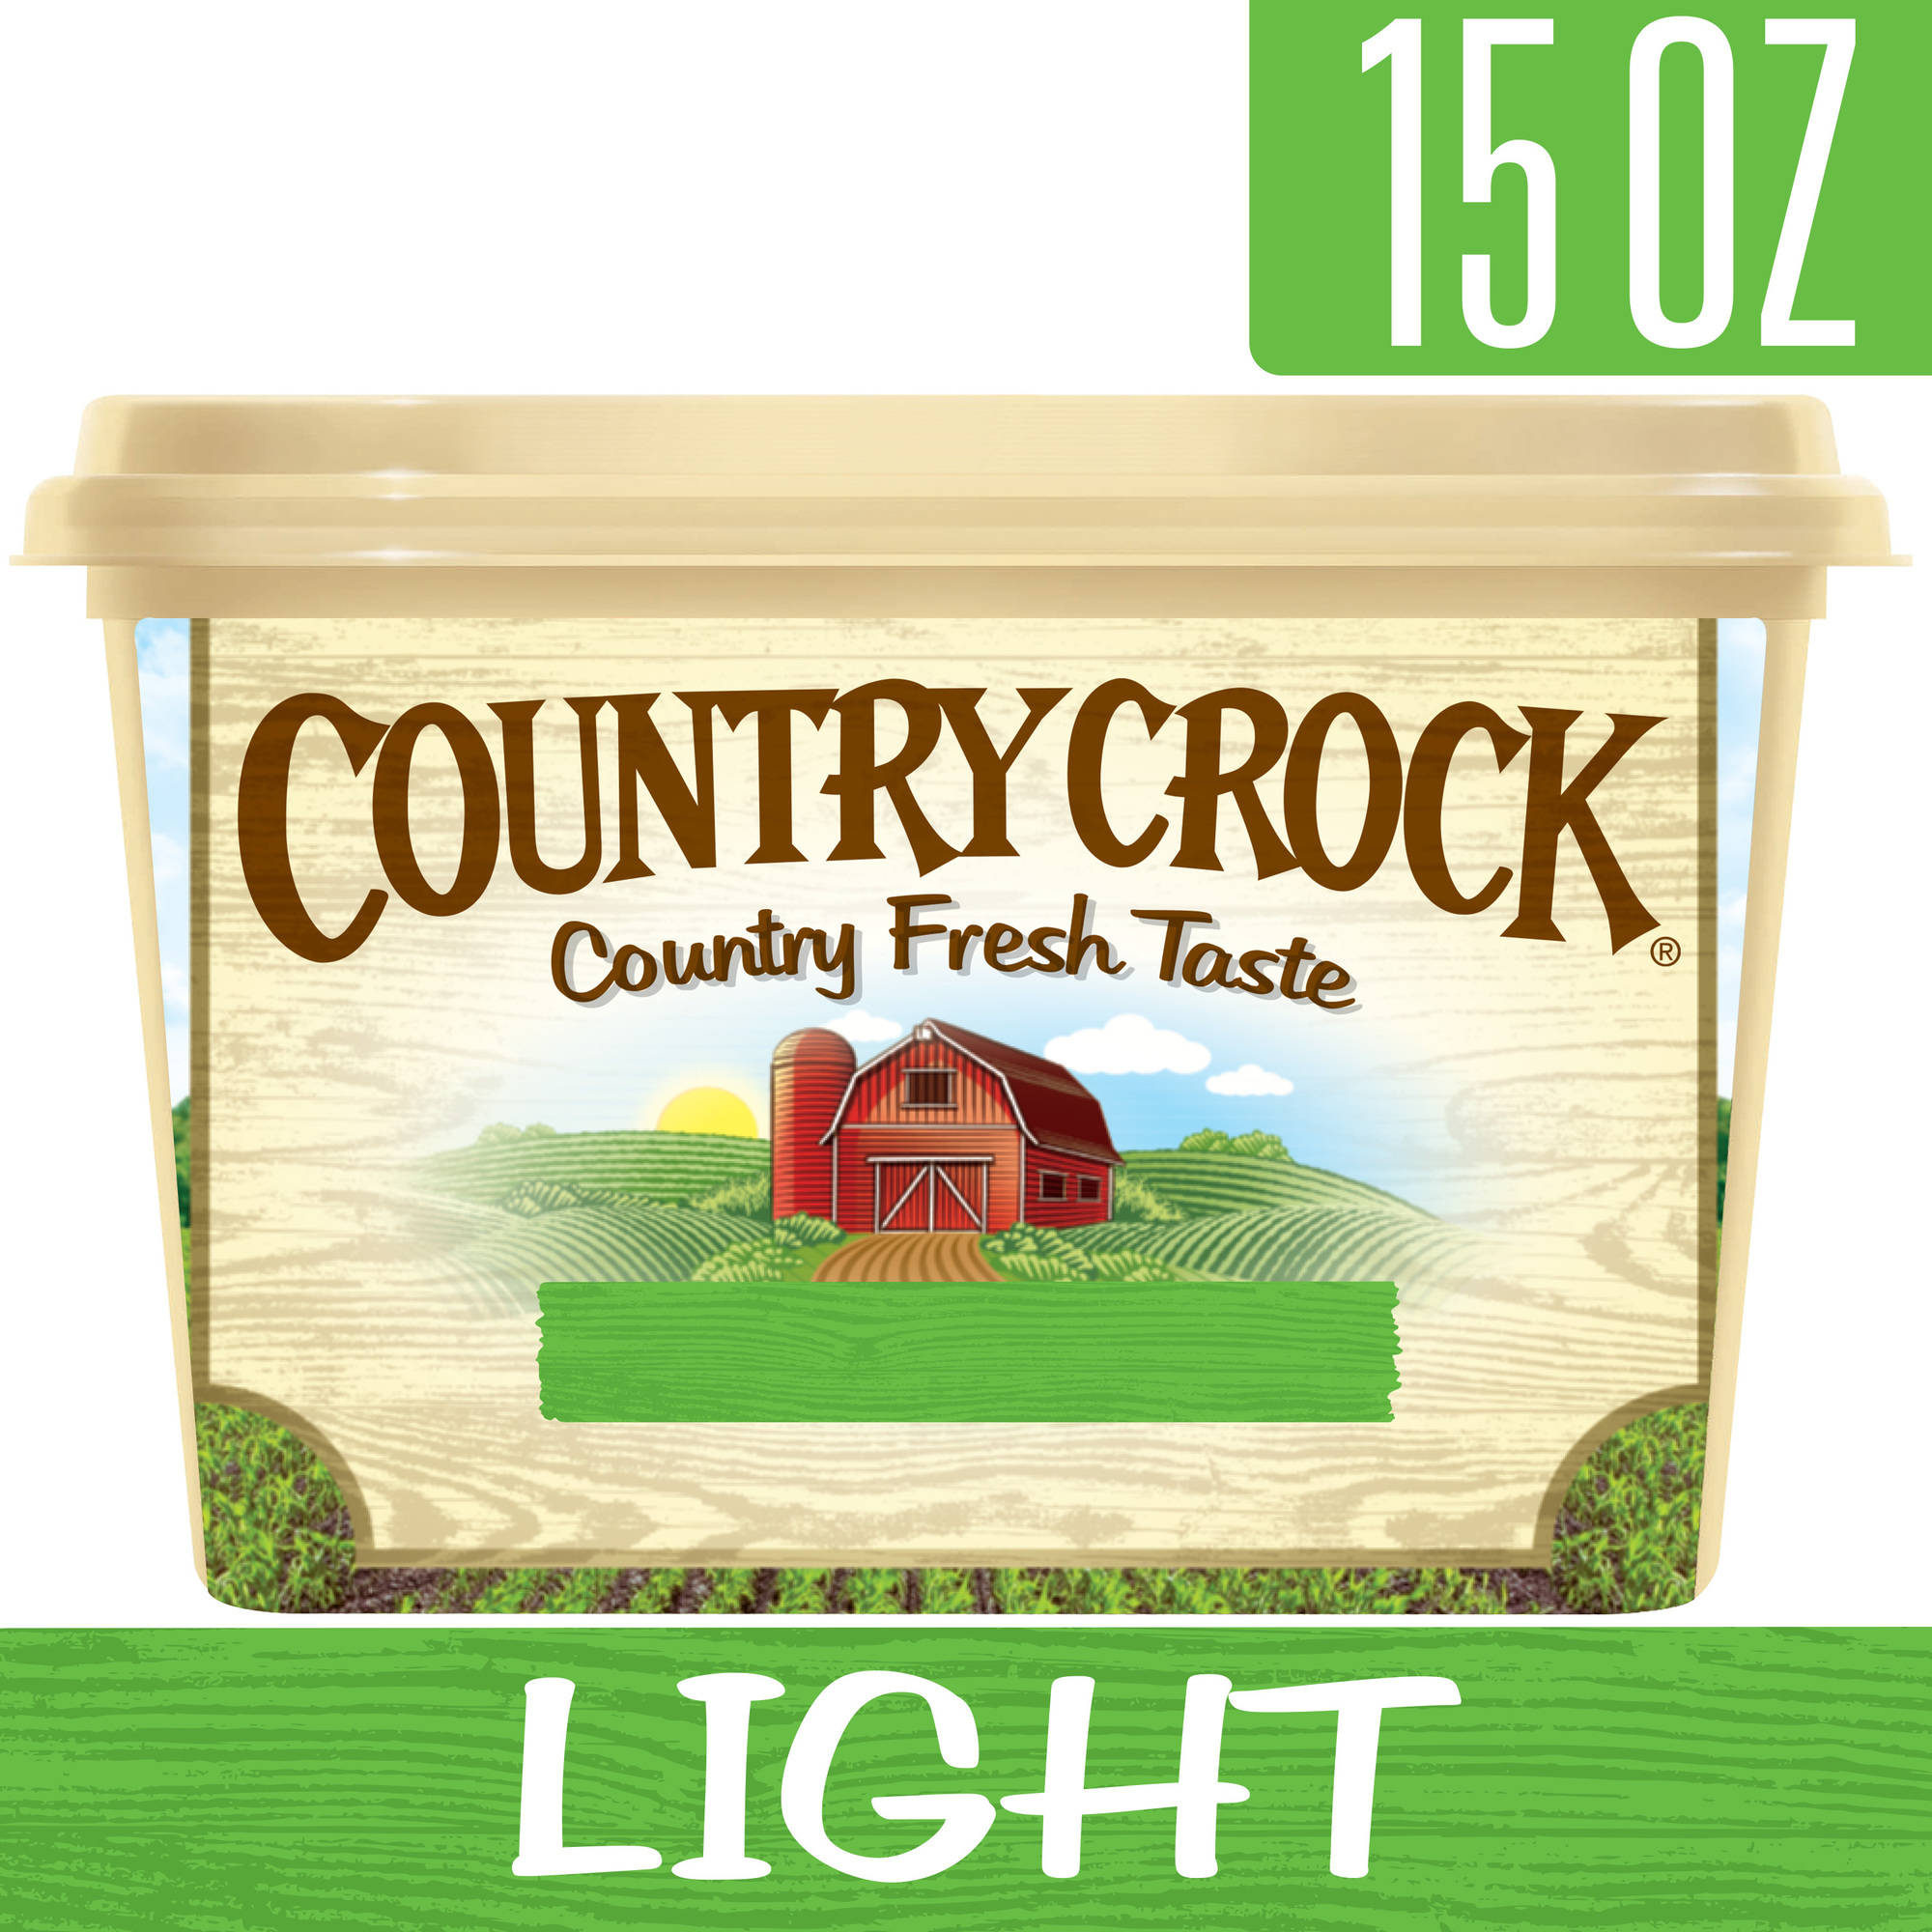 Country Crock Light Vegetable Oil Spread Tub, 15 oz